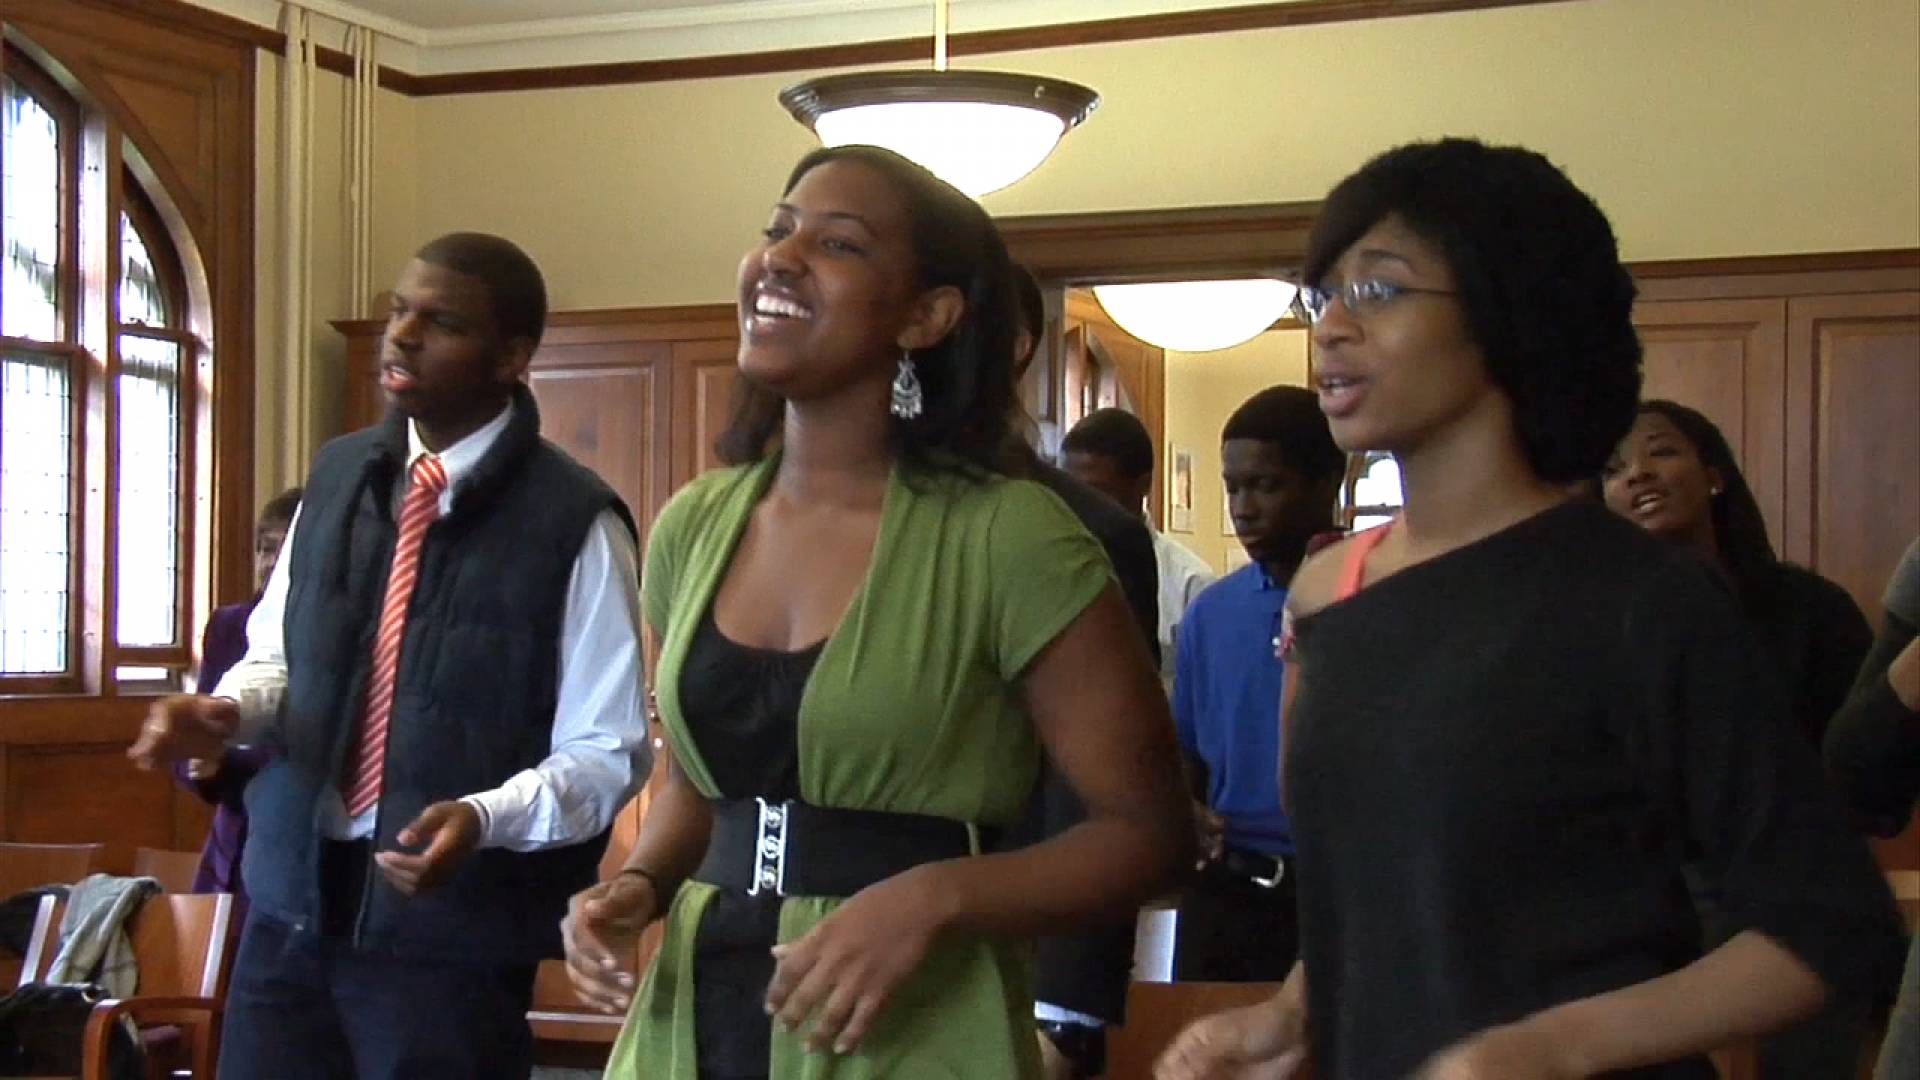 Students singing in Murray Dodge Hall